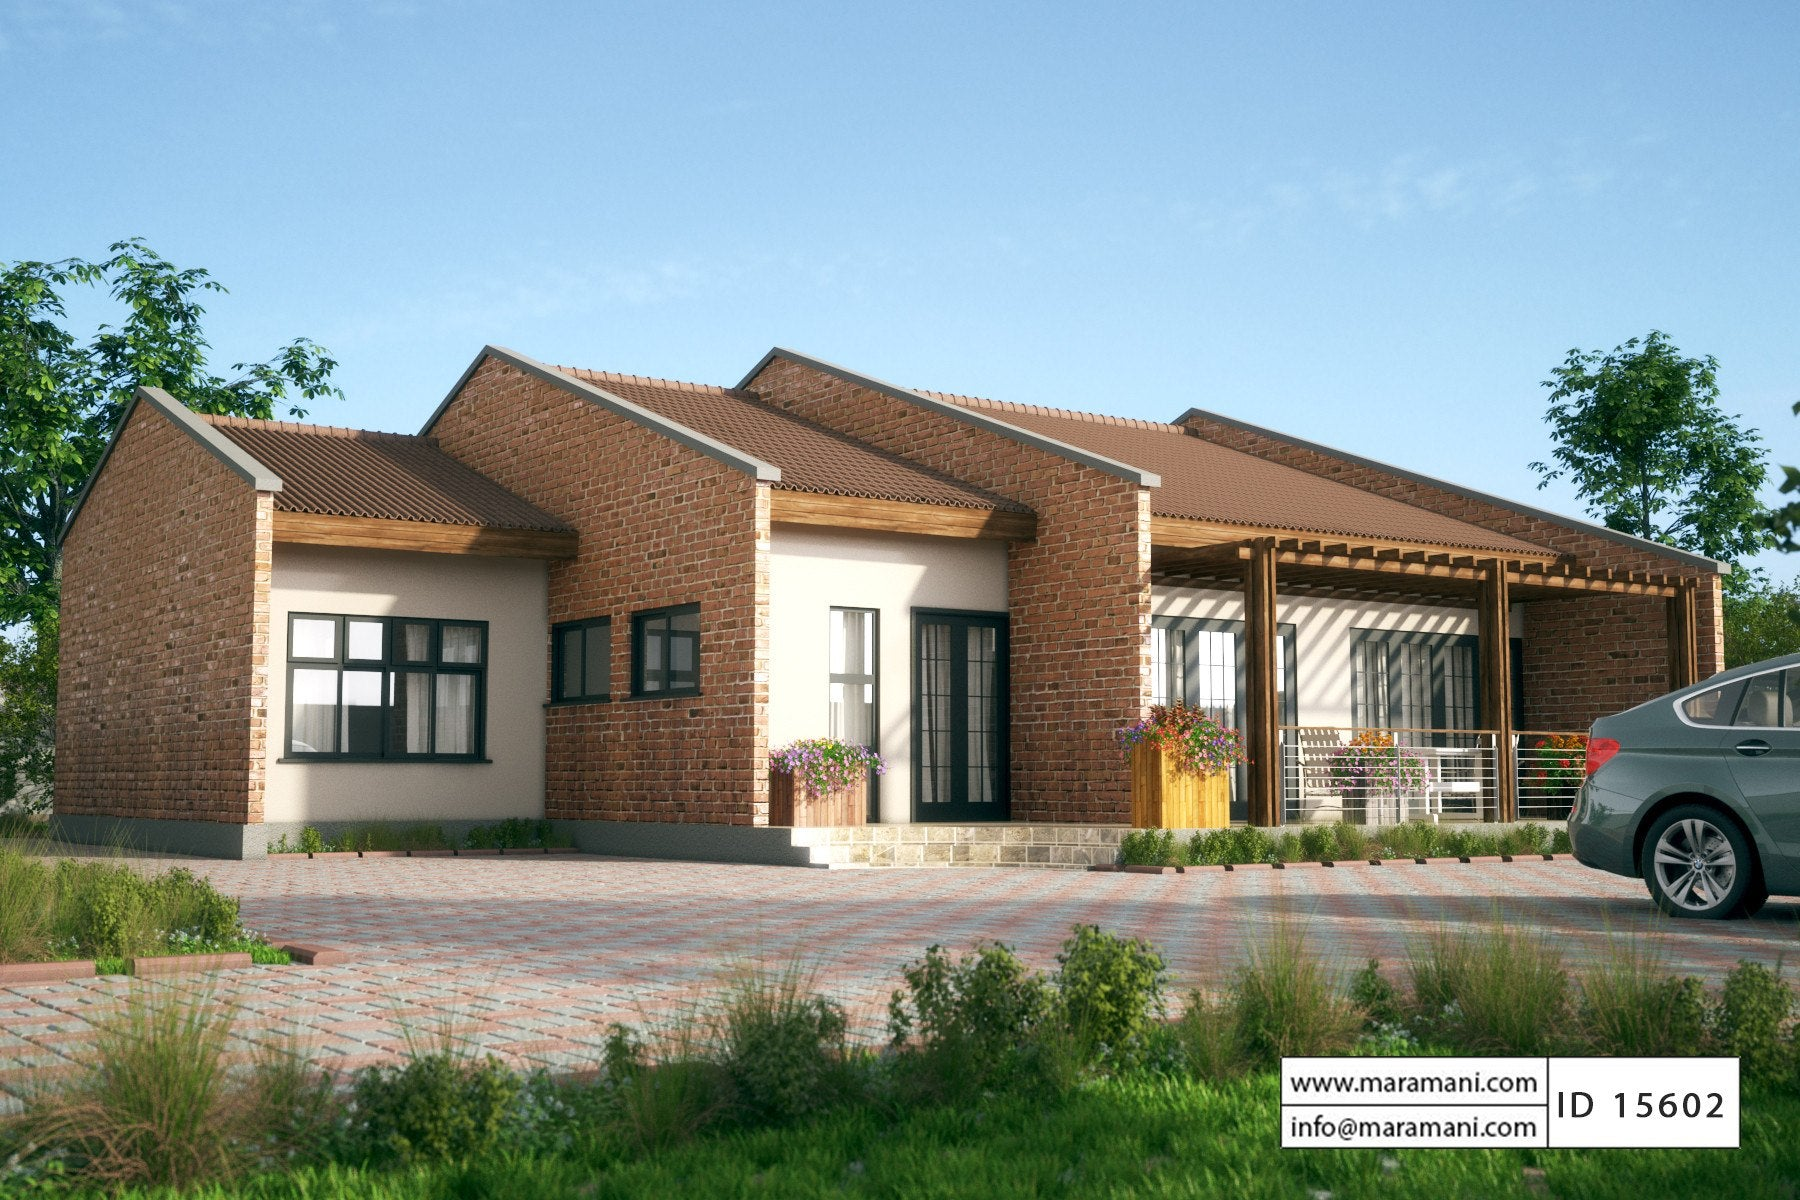 5 Bedroom House PlanID 15602House Plans by Maramani